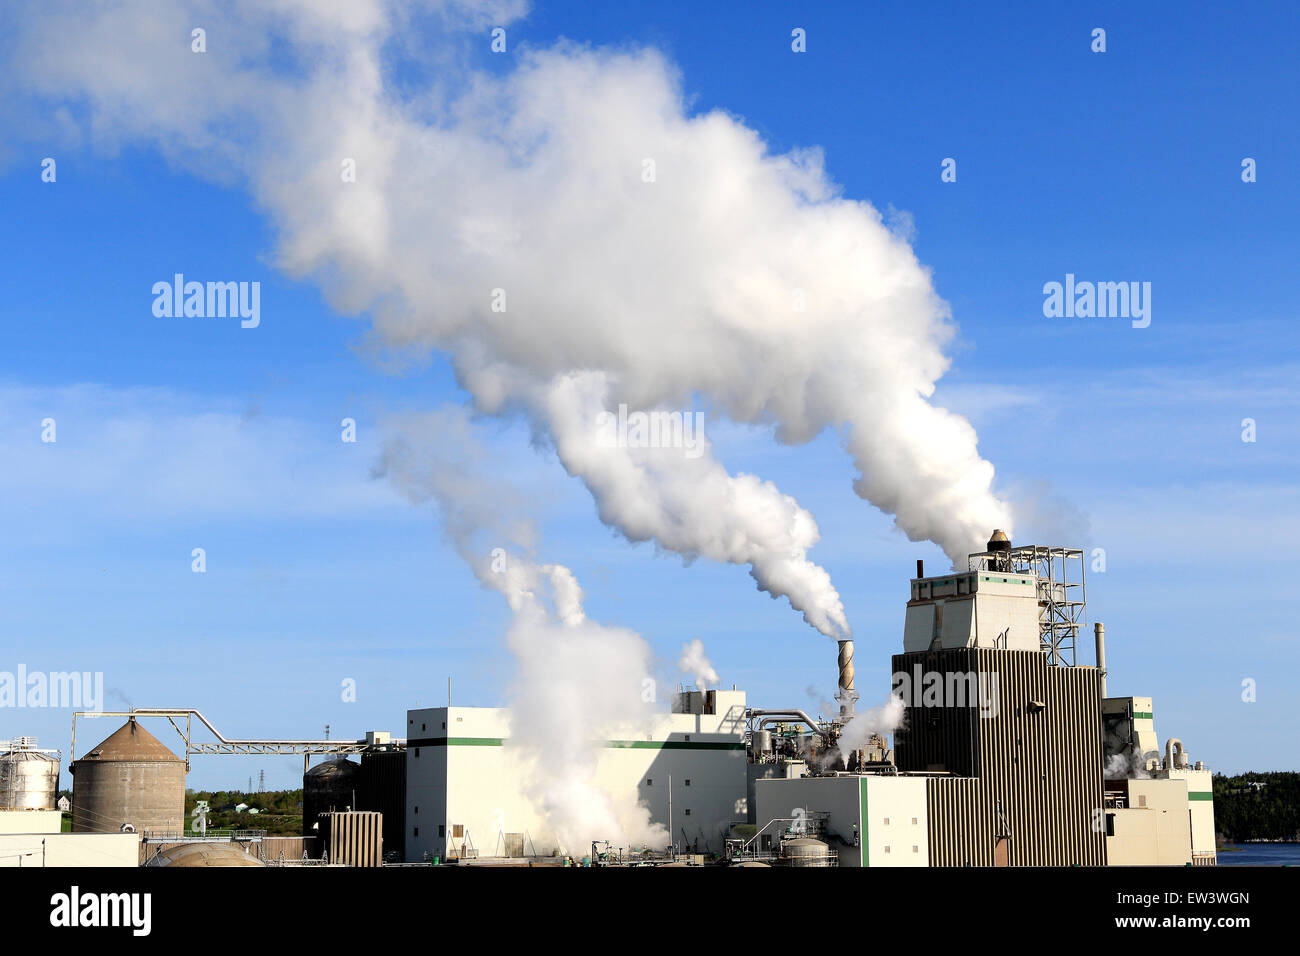 Smoke from factory releases air pollution and greenhouse gases. - Stock Image